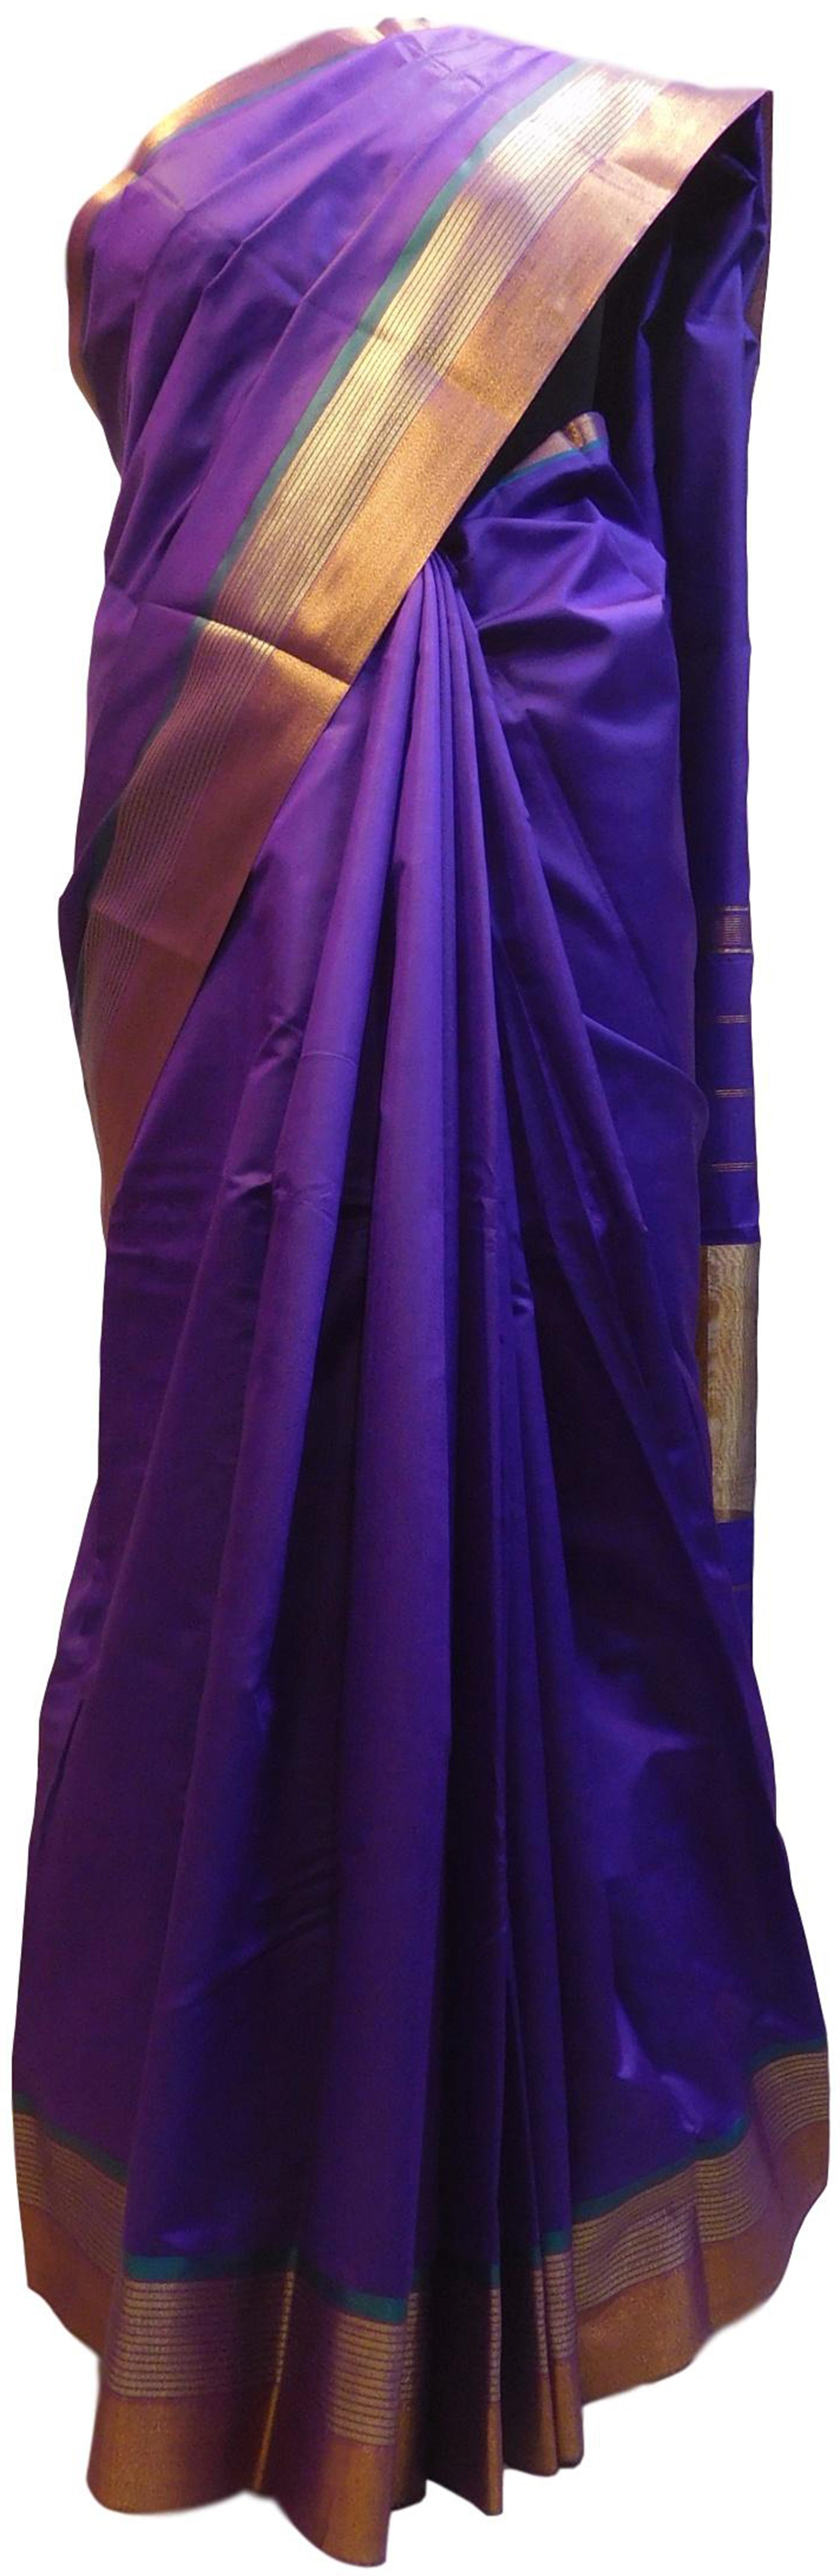 Purple Designer Bridal Hand Weaven Pure Benarasi Zari Work Saree Sari With Blouse